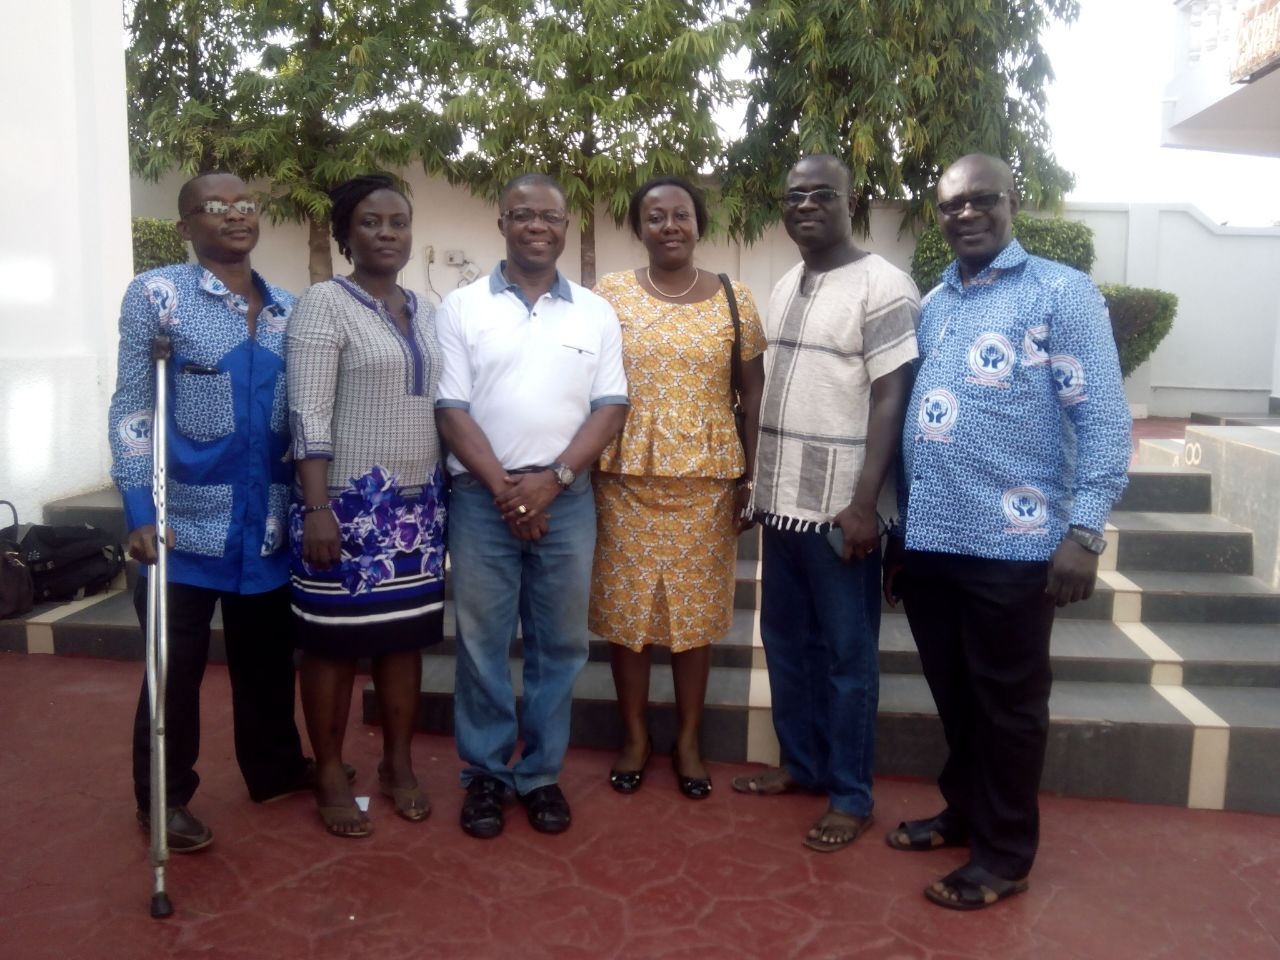 From left to Right -Mr Michael Asabere, Miss Mary Theodora Kukah, Dr Charles Anane, Mrs Christiana Boatemaa Atakora- (Manageress), Dr Anthony Enimil, Dr Frank Ankobea)